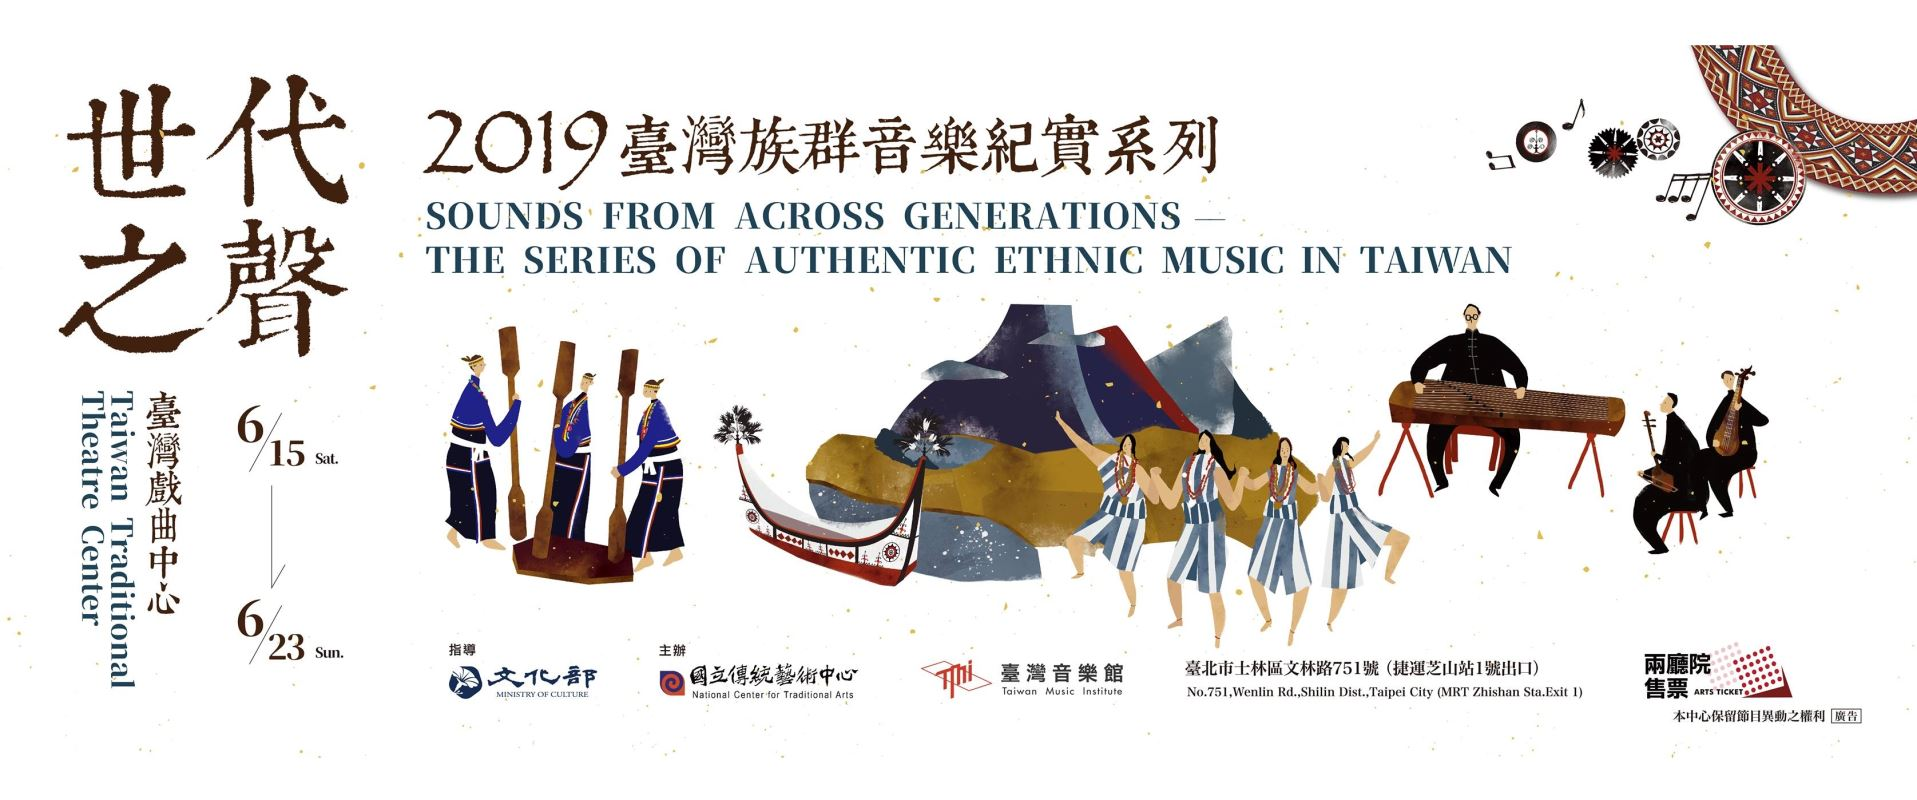 Concert series to present music from five Taiwanese generations[另開新視窗]